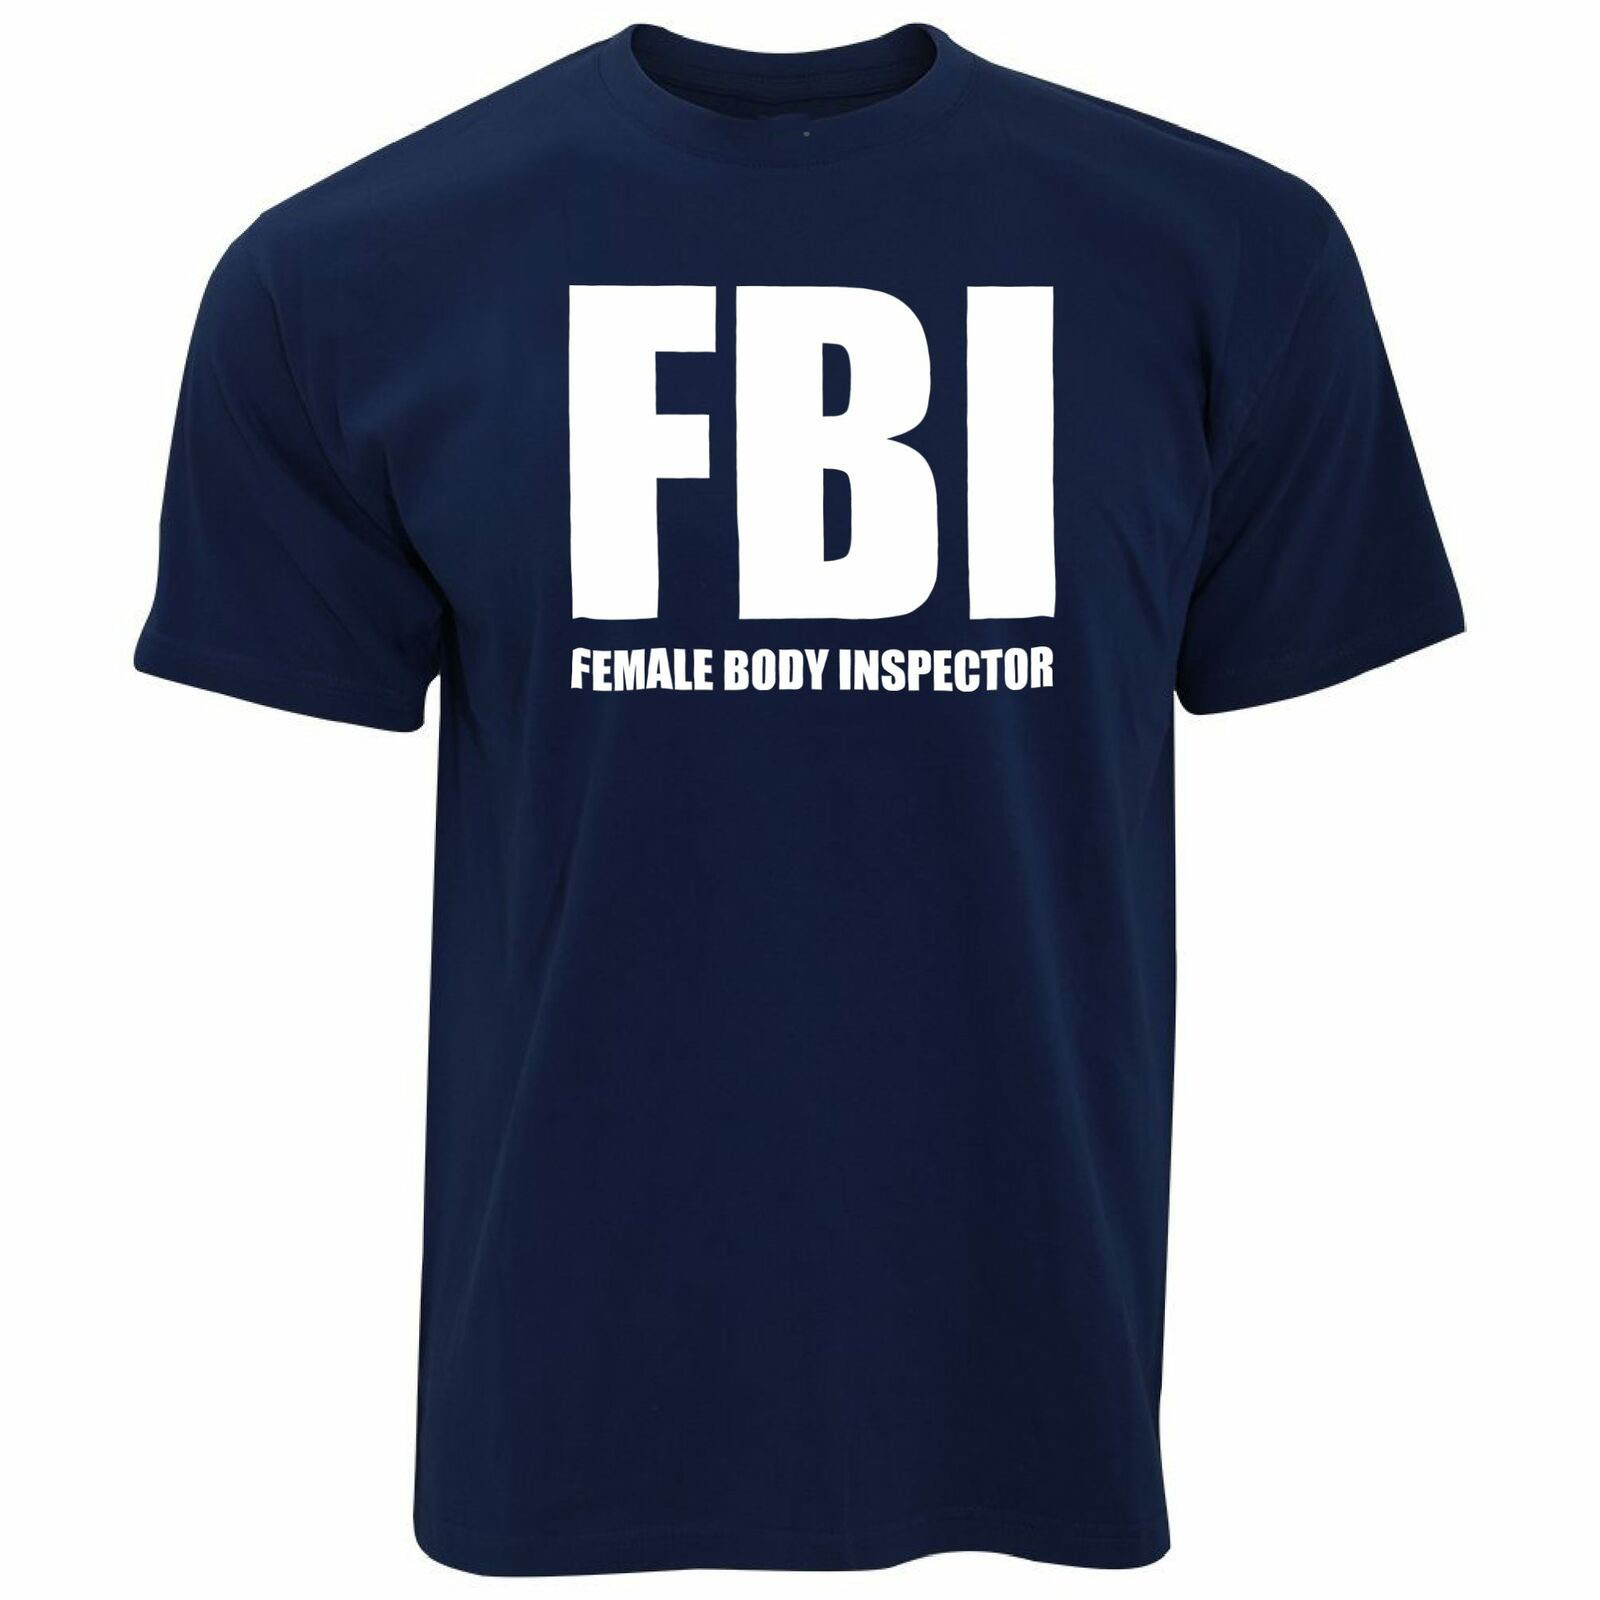 Funny FBI T Shirt Men Women Female Body Inspector <font><b>Parody</b></font> Slogan Rude Joke <font><b>Tshirt</b></font> Stylish Custom Tee Shirt image